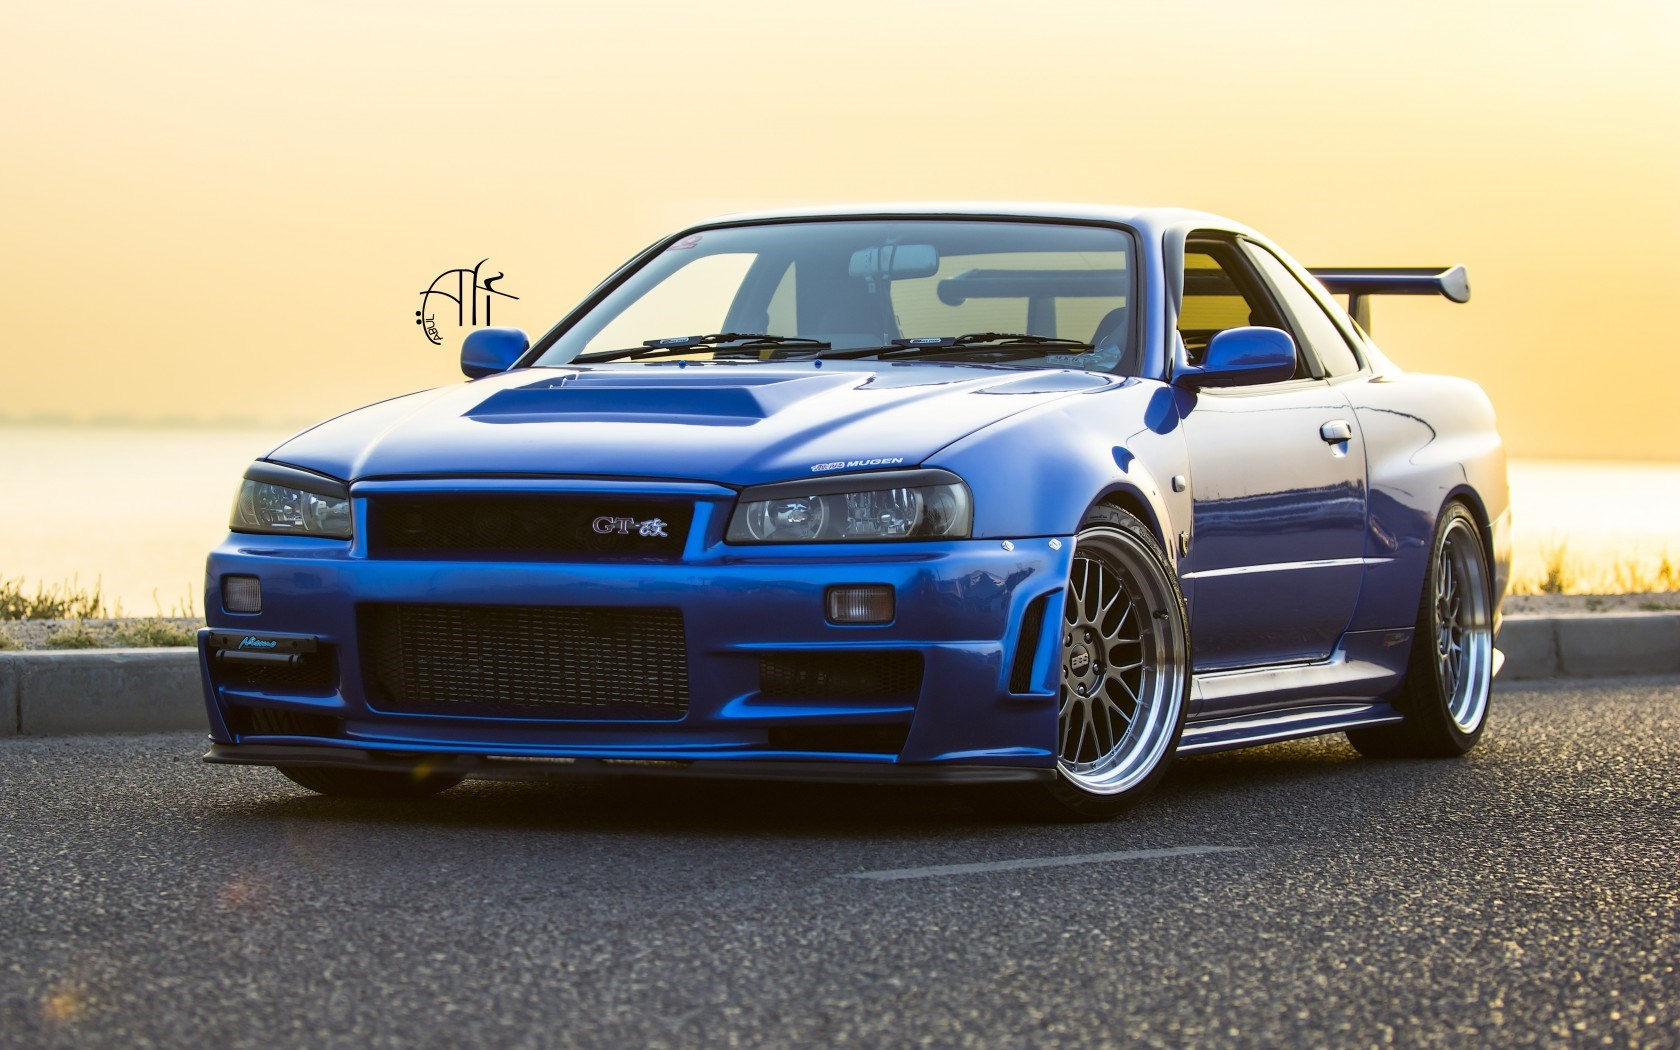 Nissan Skyline GT-R R34 Wheels Tuning Car HD Wallpaper